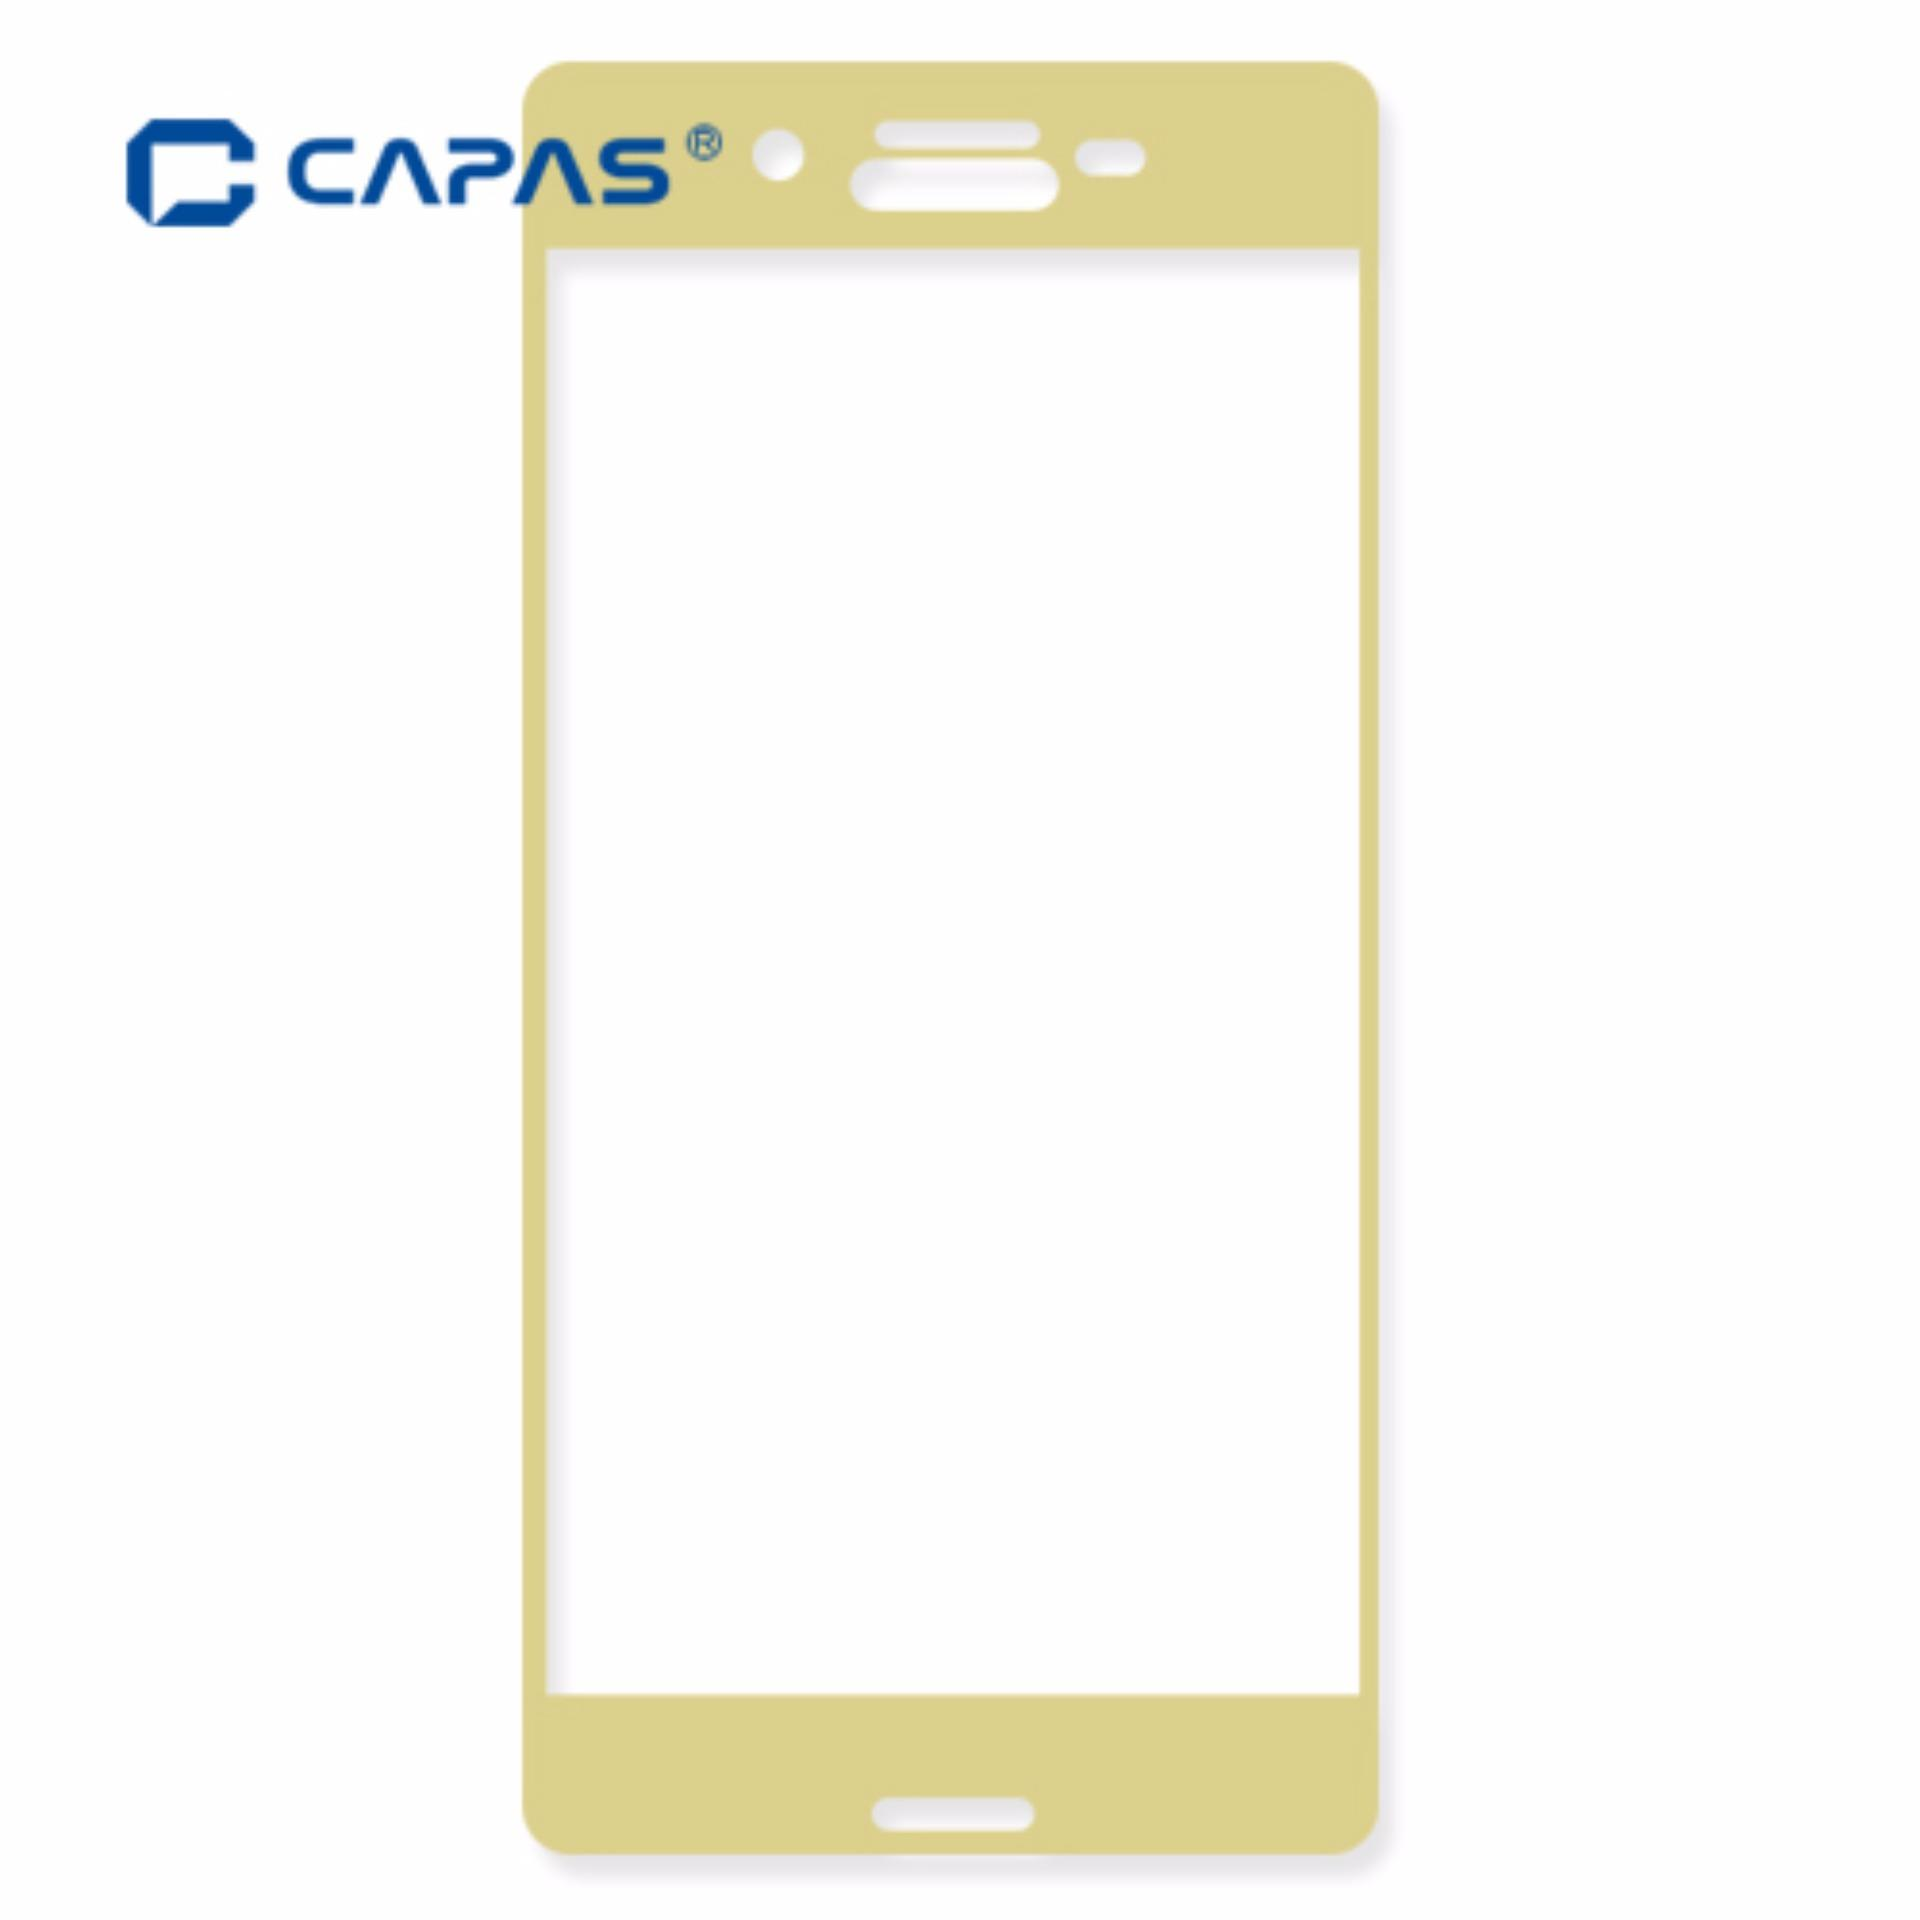 CAPAS 3D Curved Full Cover HD Clear Tempered Glass for Sony Xperia X F5121 Screen Protector